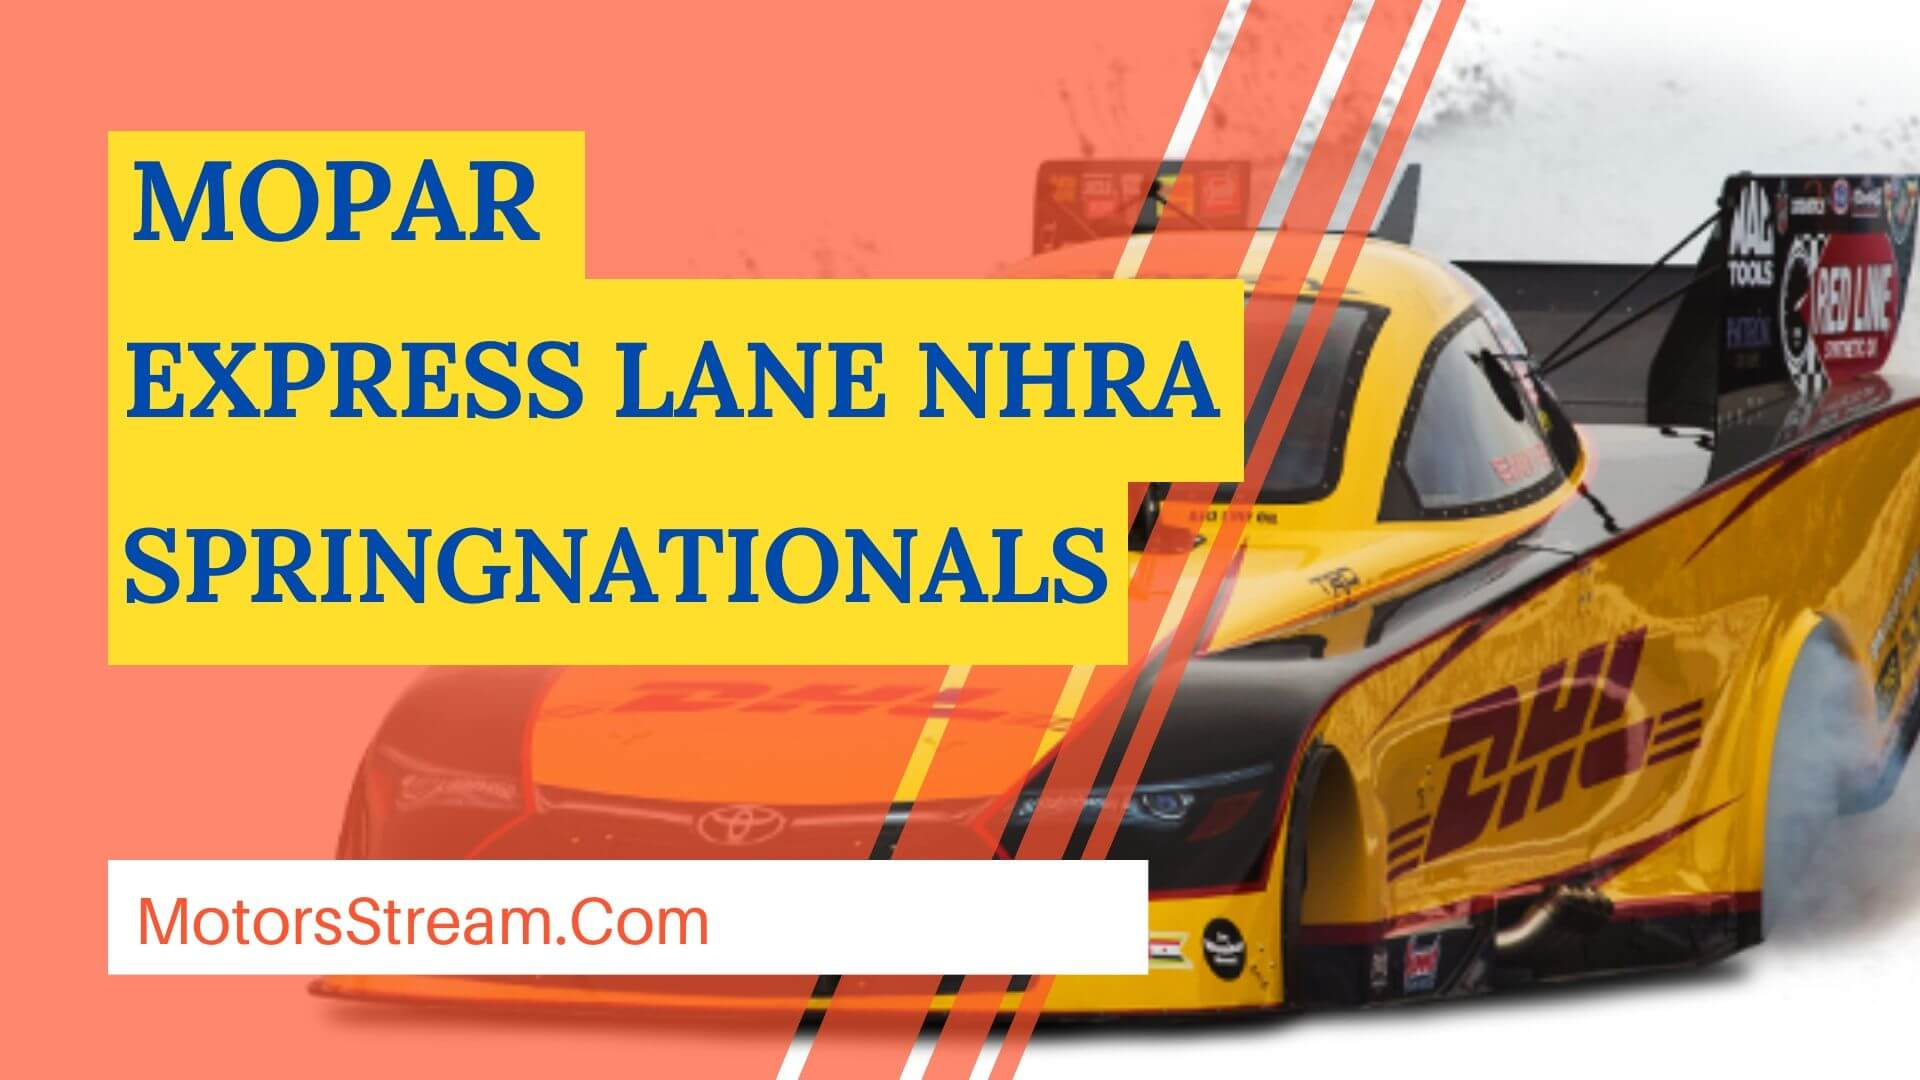 Live Mopar Express Lane NHRA SpringNationals 2020